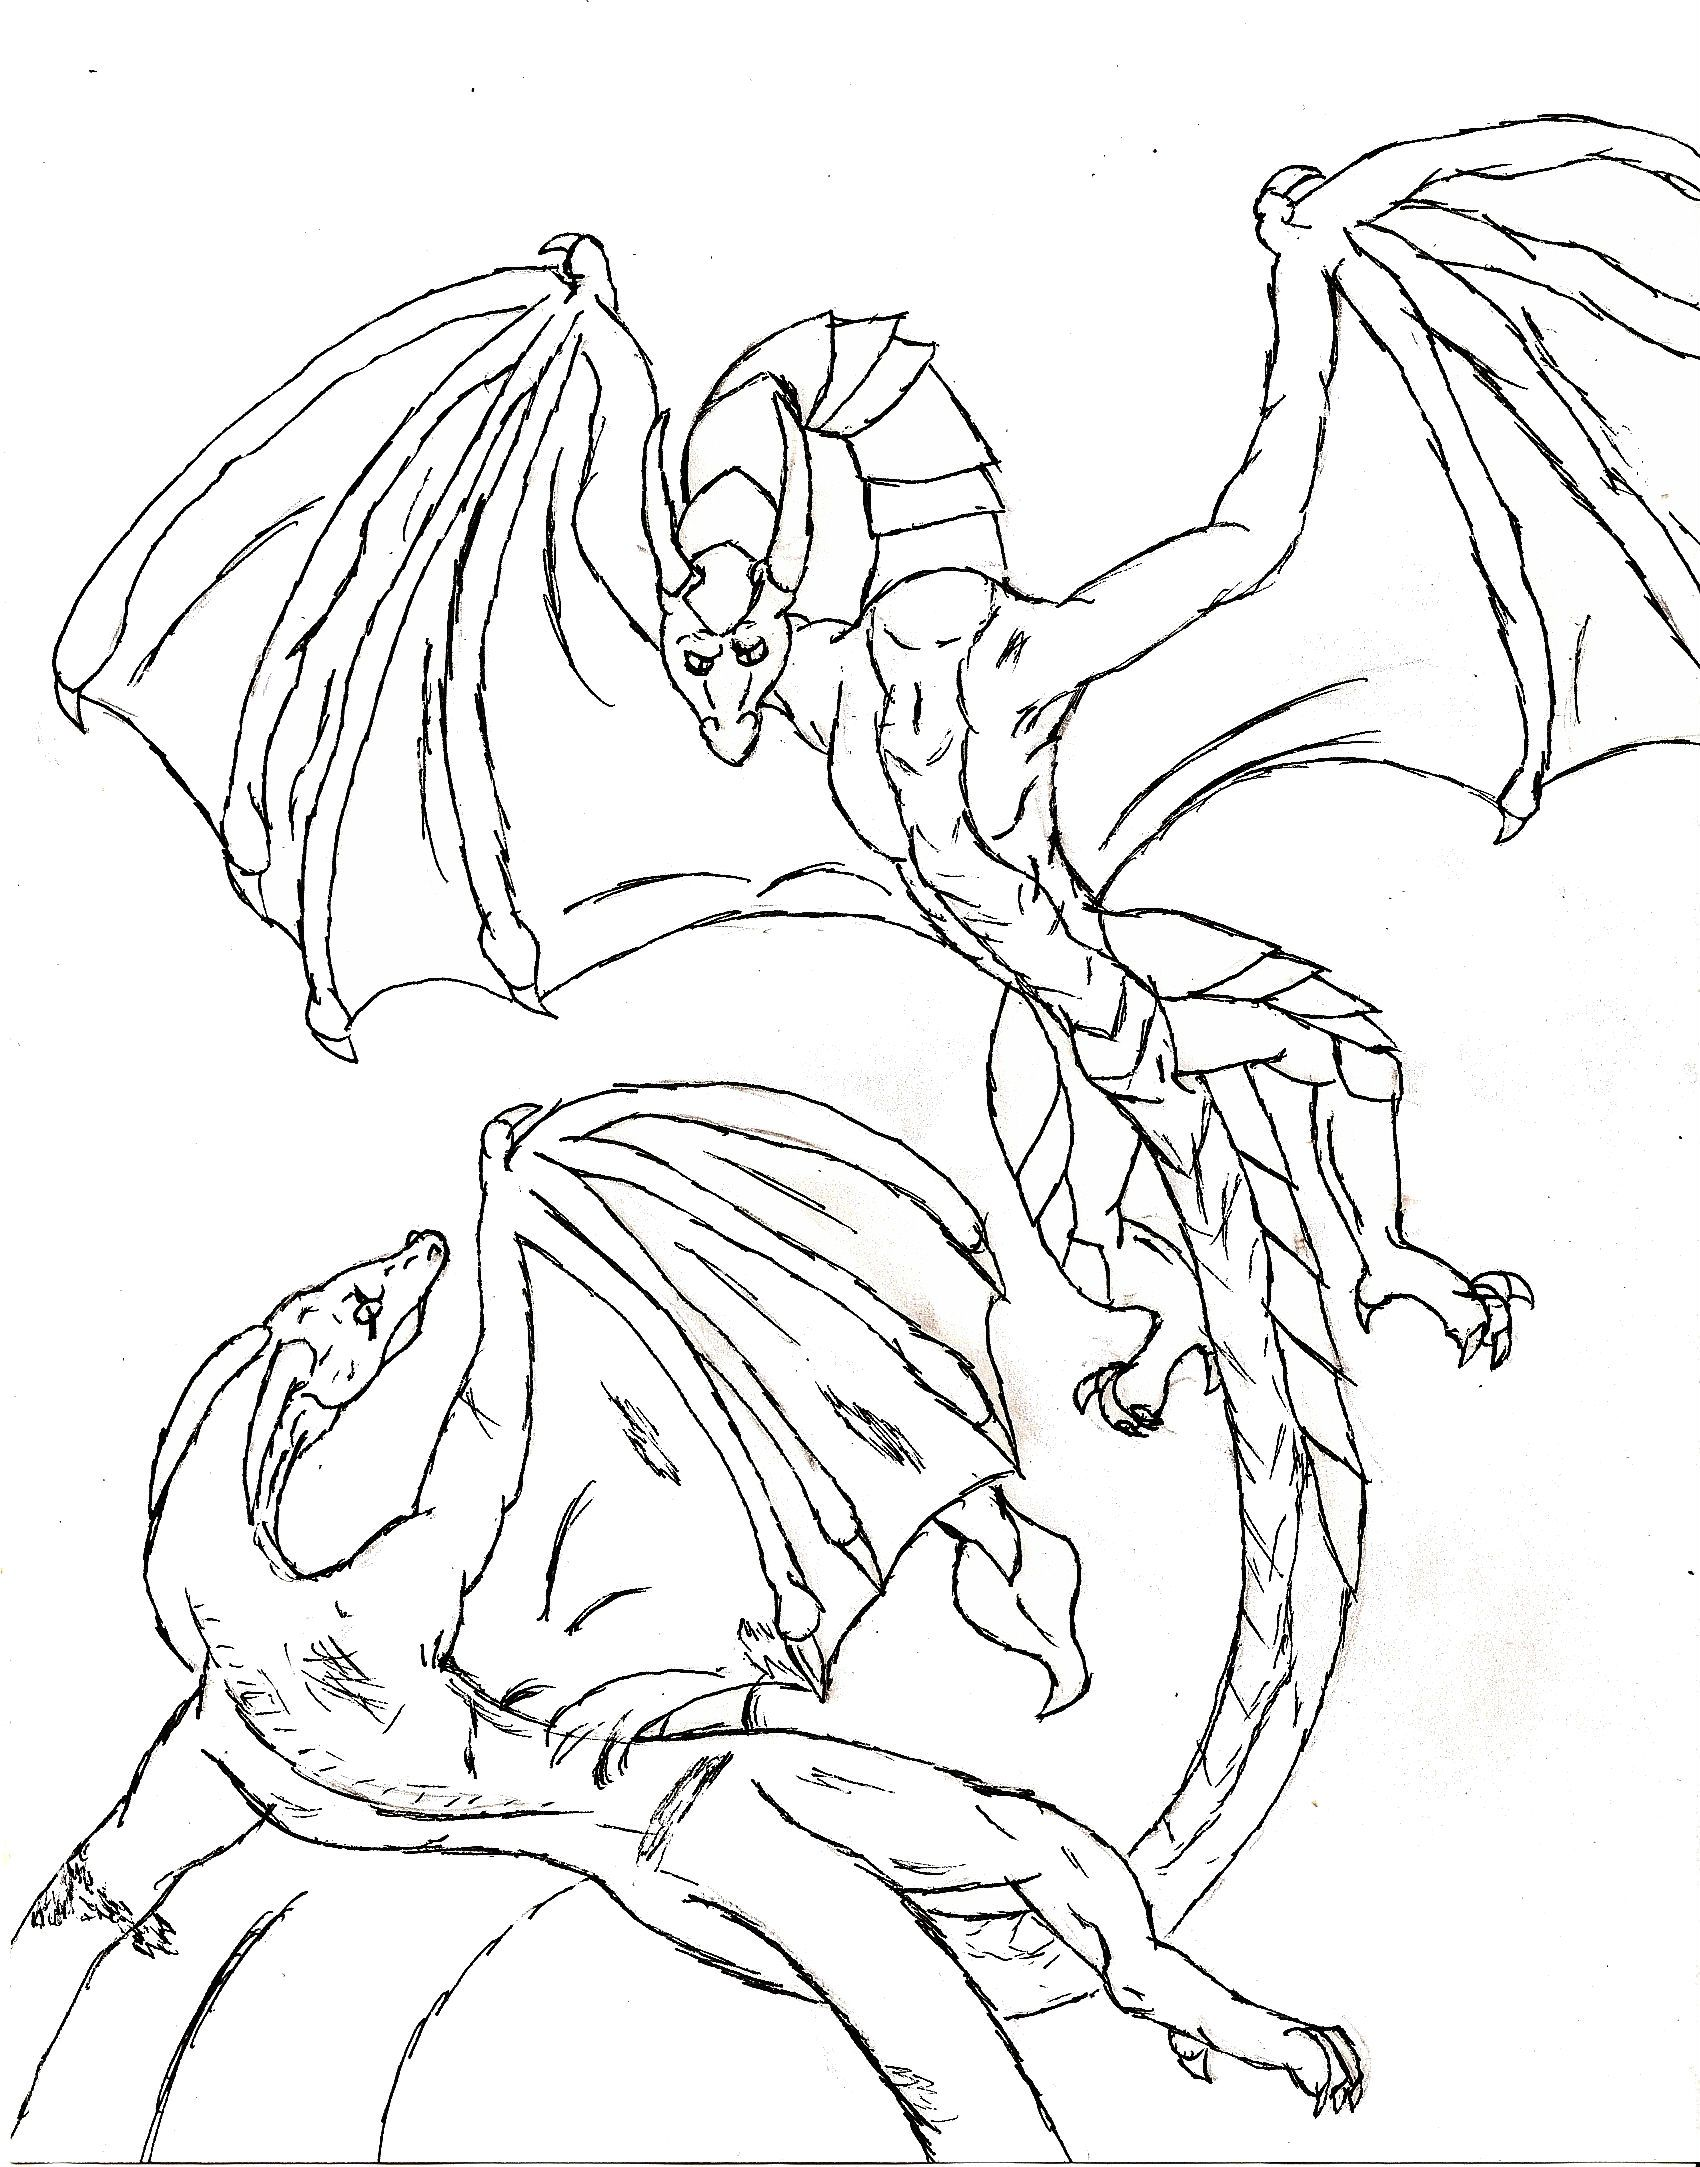 Dragon Fight Coloring Pages For Kids Cgg Printable Dragons Coloring Pages For Kids